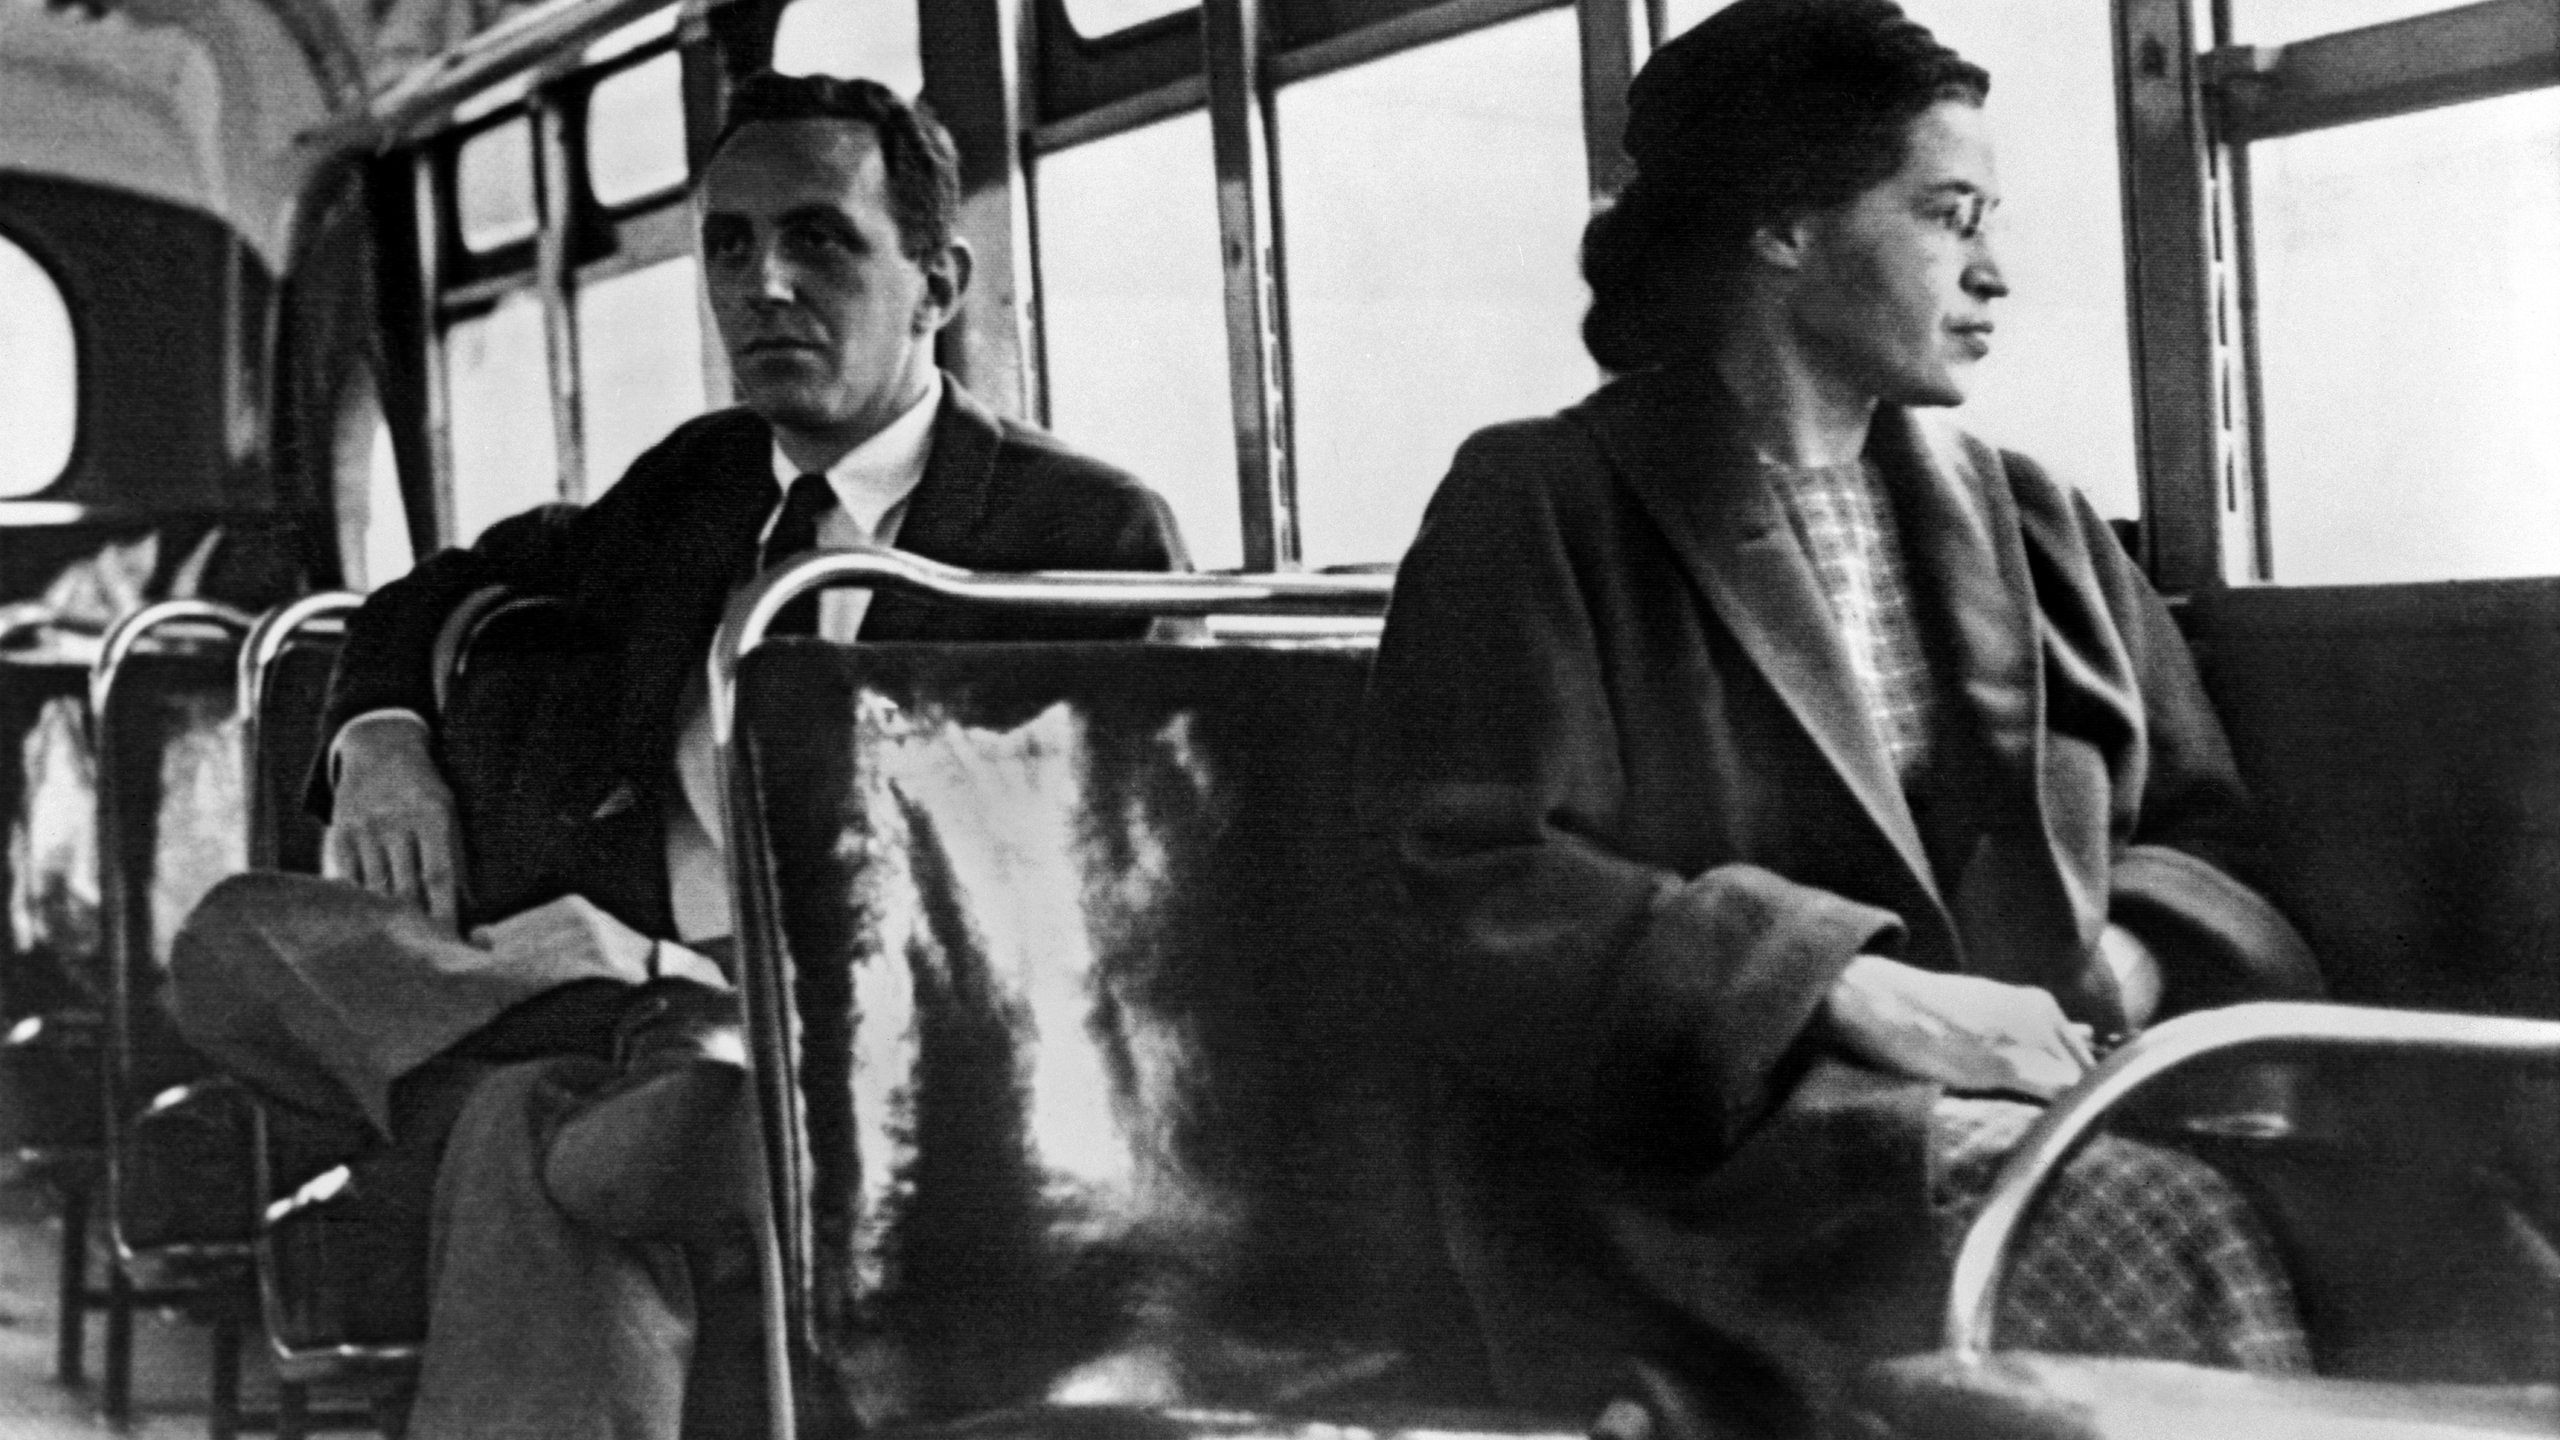 Rosa Parks seated toward the front of the bus, Montgomery, Ala., 1956.